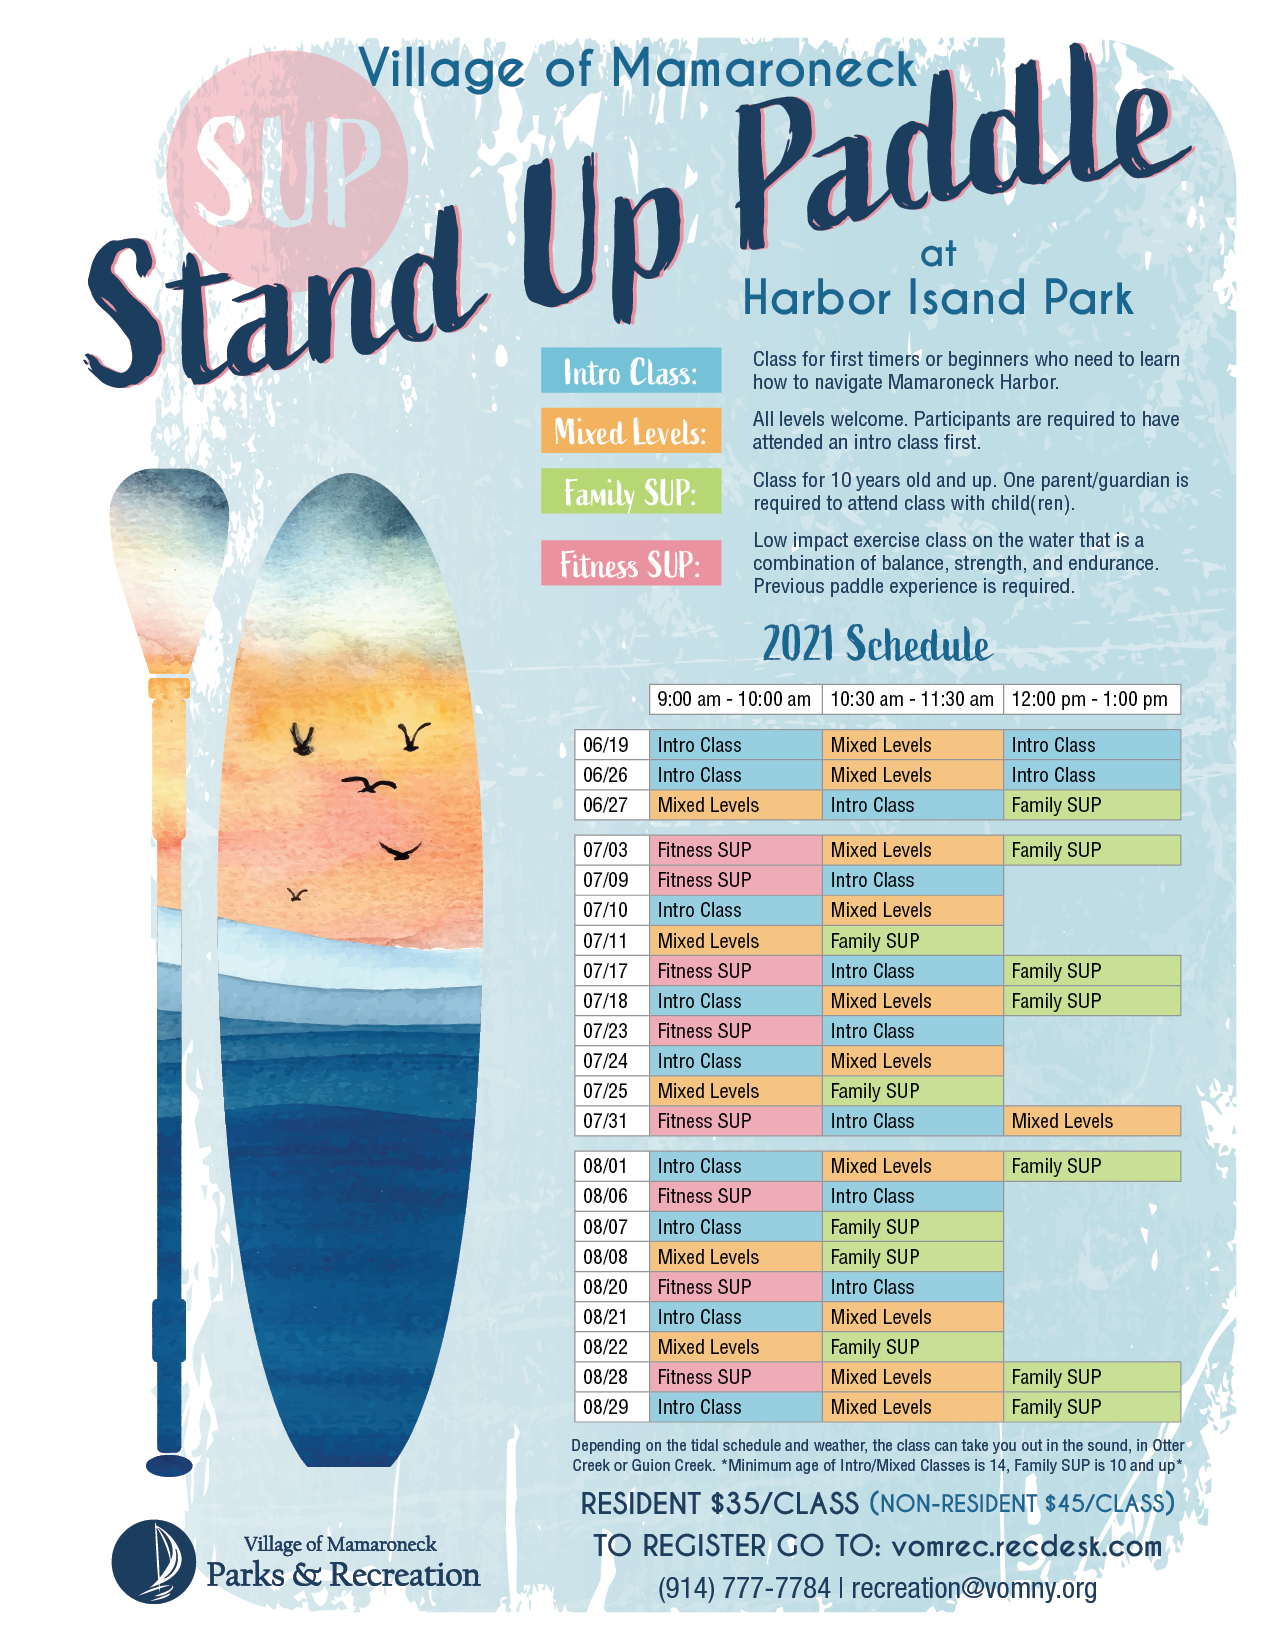 Stand Up Paddle 2021 at Harbor Island Park